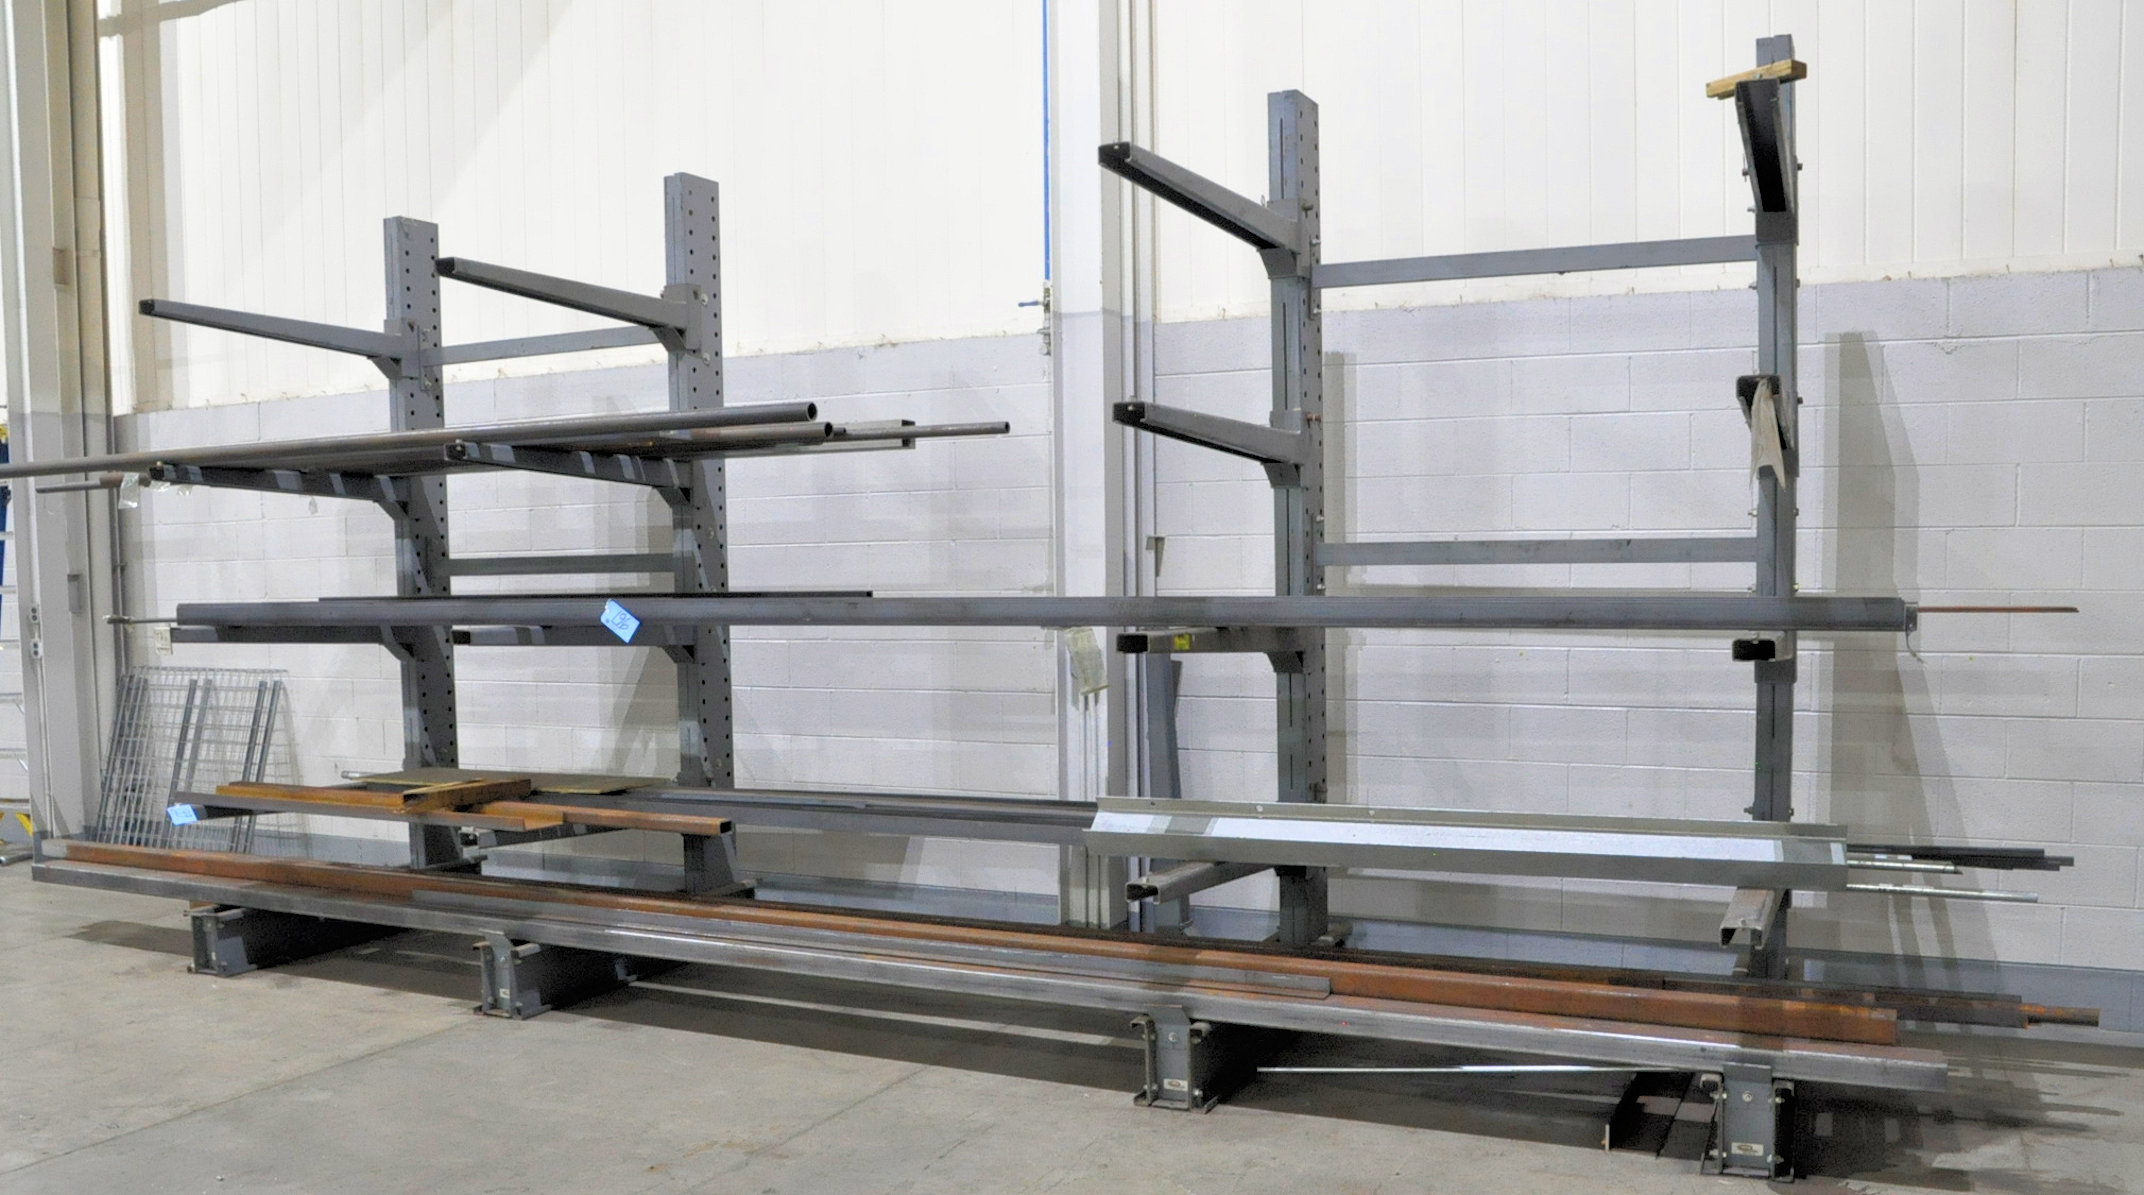 Lot-Hollow Steel Tube, Pipe, Angle and Flat Stock on (1) Rack, (Rack Not Included)